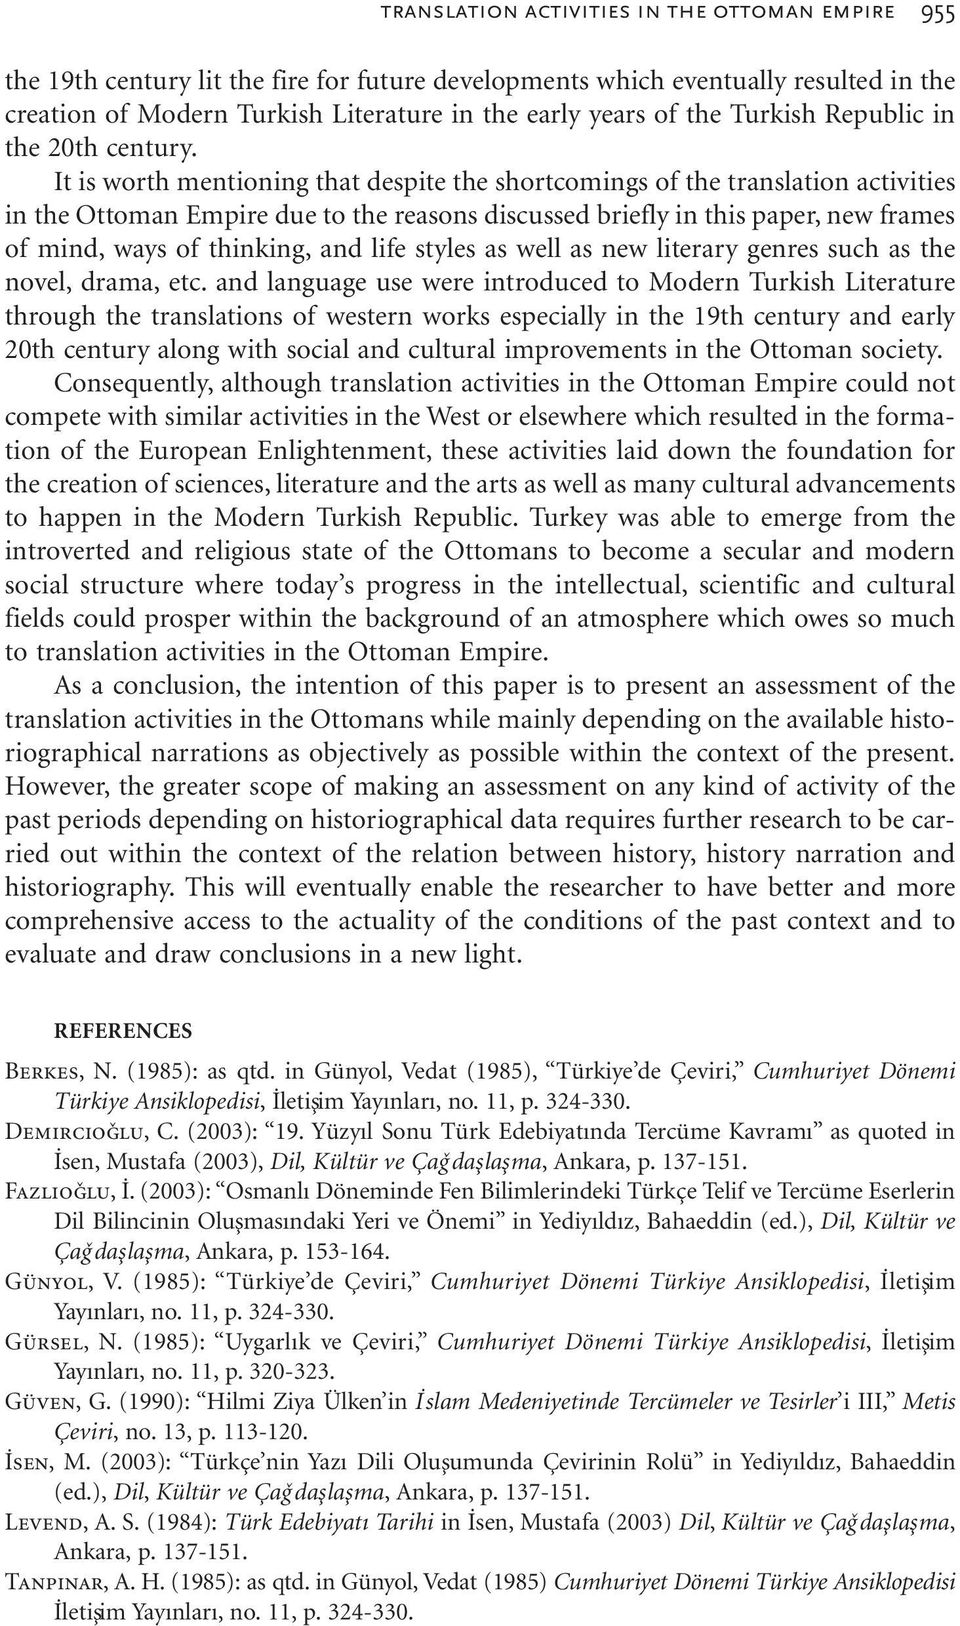 It is worth mentioning that despite the shortcomings of the translation activities in the Ottoman Empire due to the reasons discussed briefly in this paper, new frames of mind, ways of thinking, and